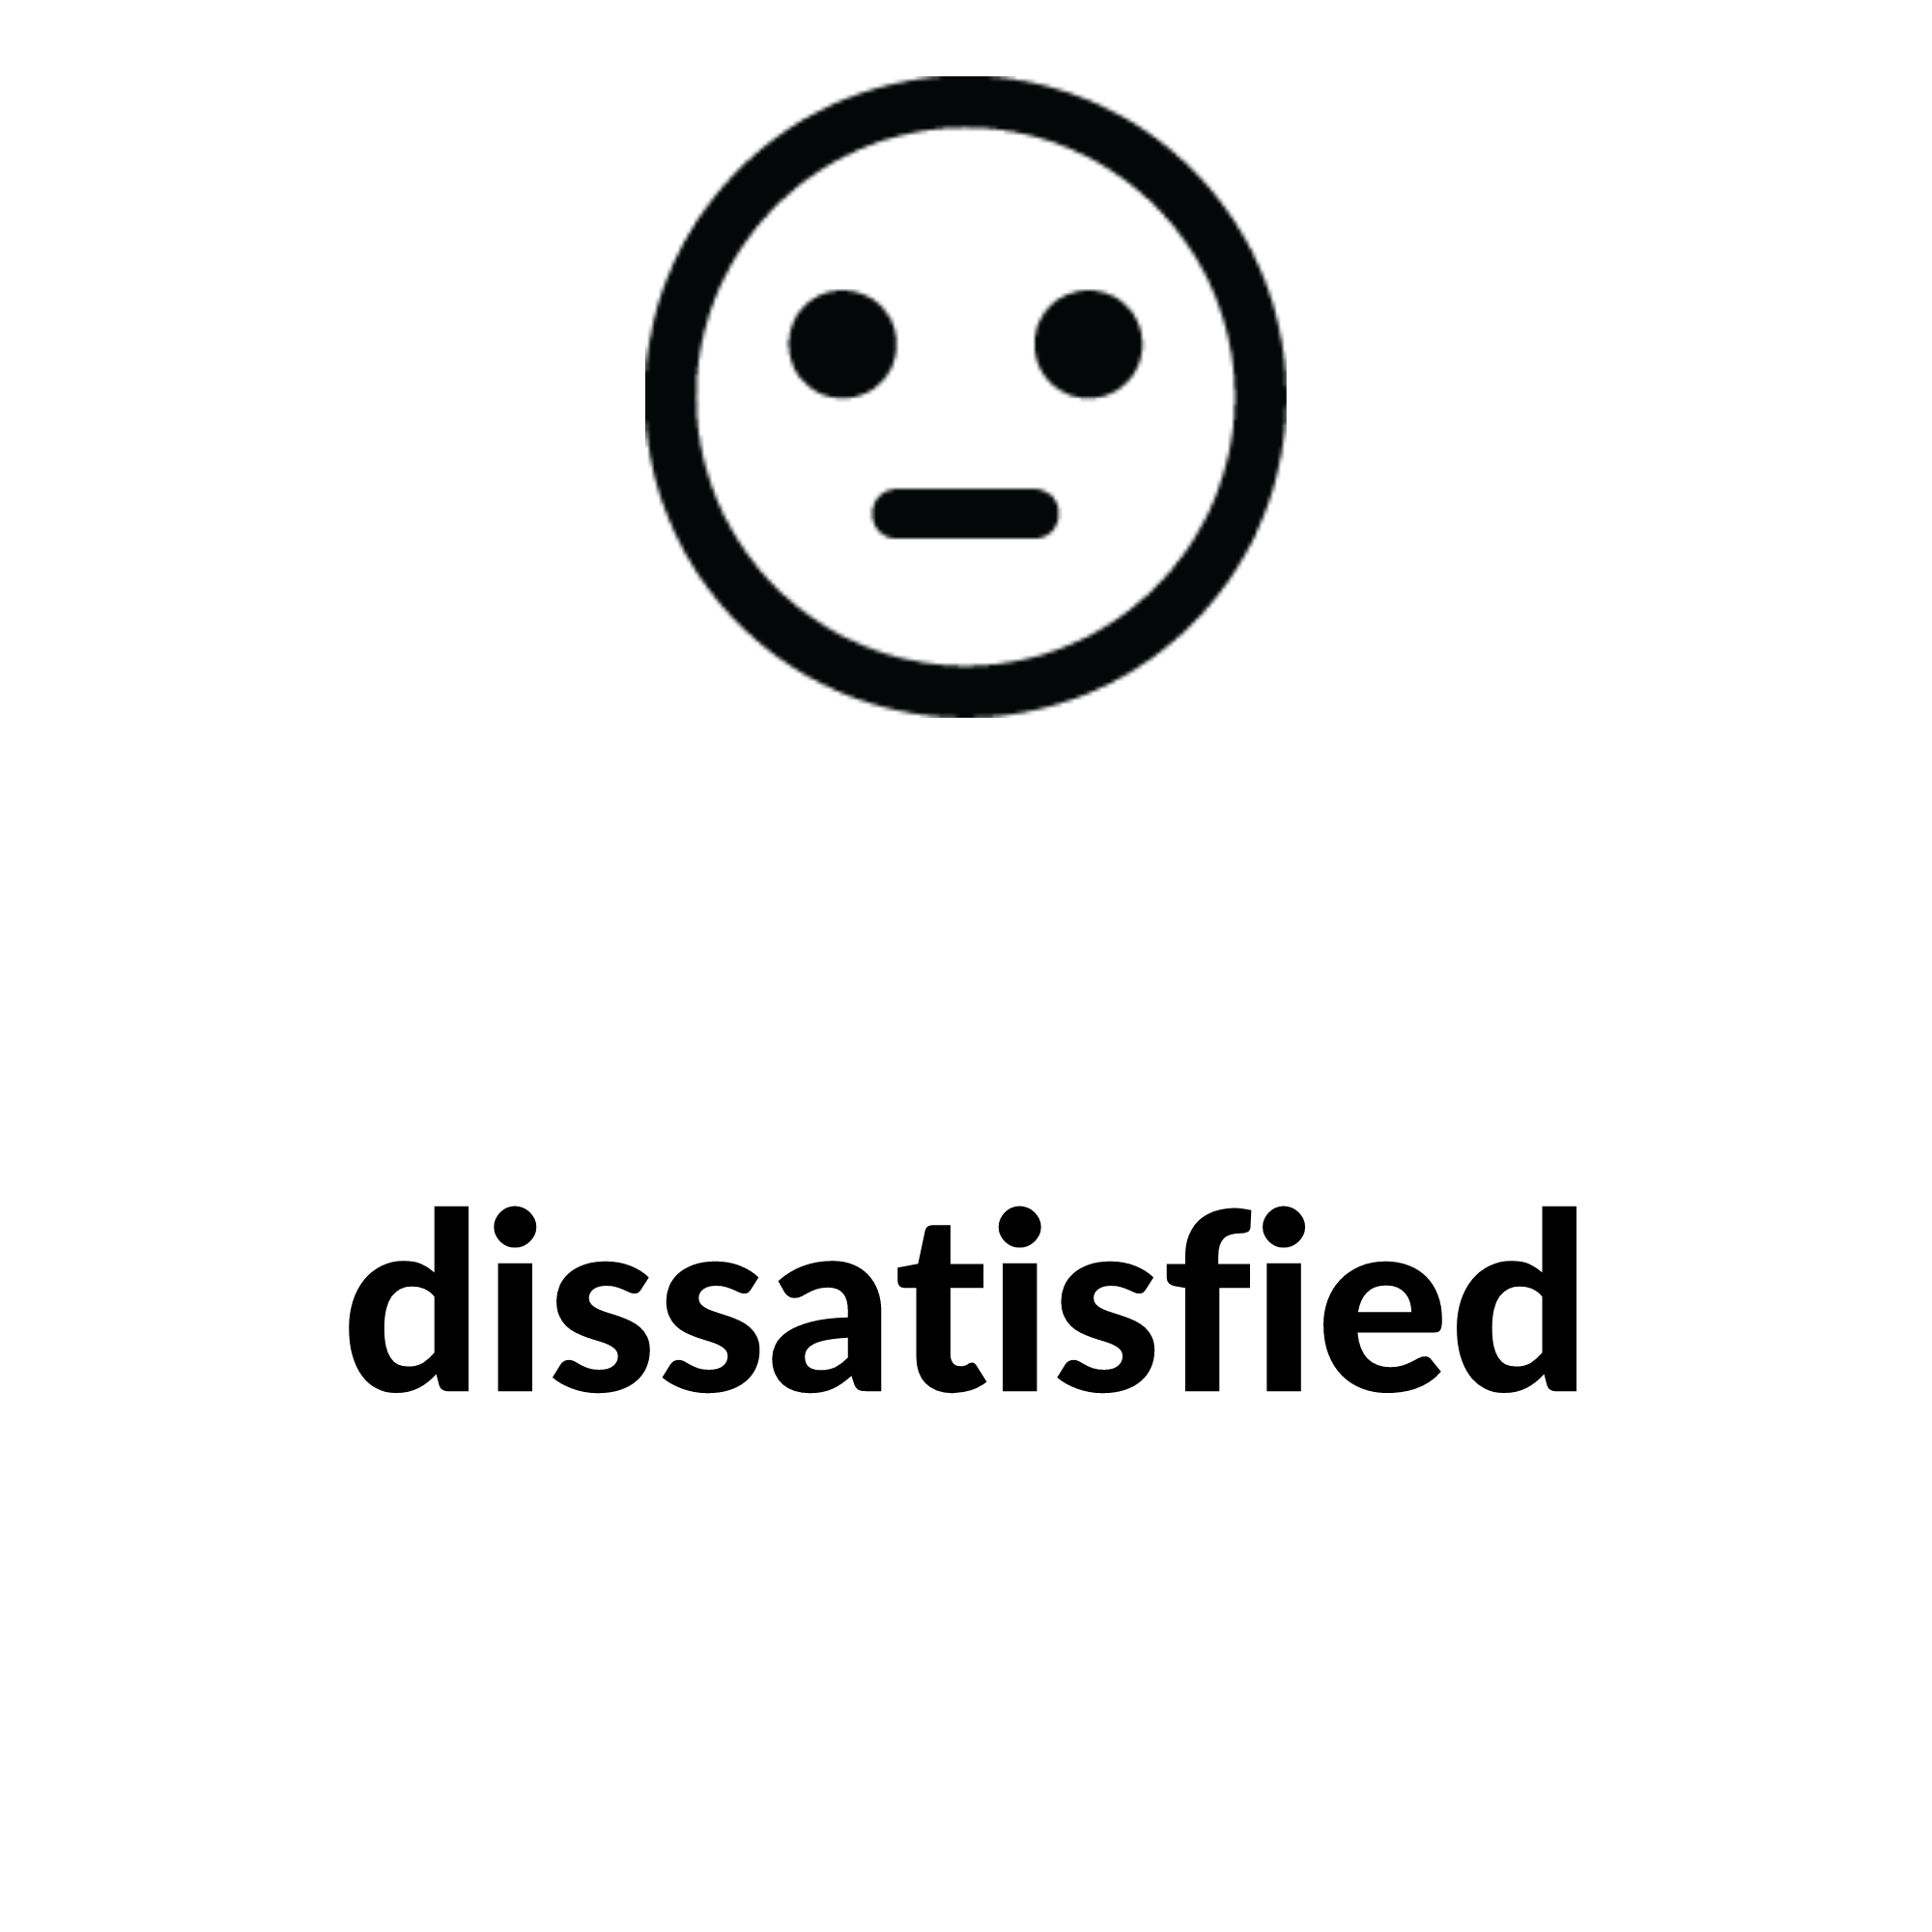 dissatisfied (1).png